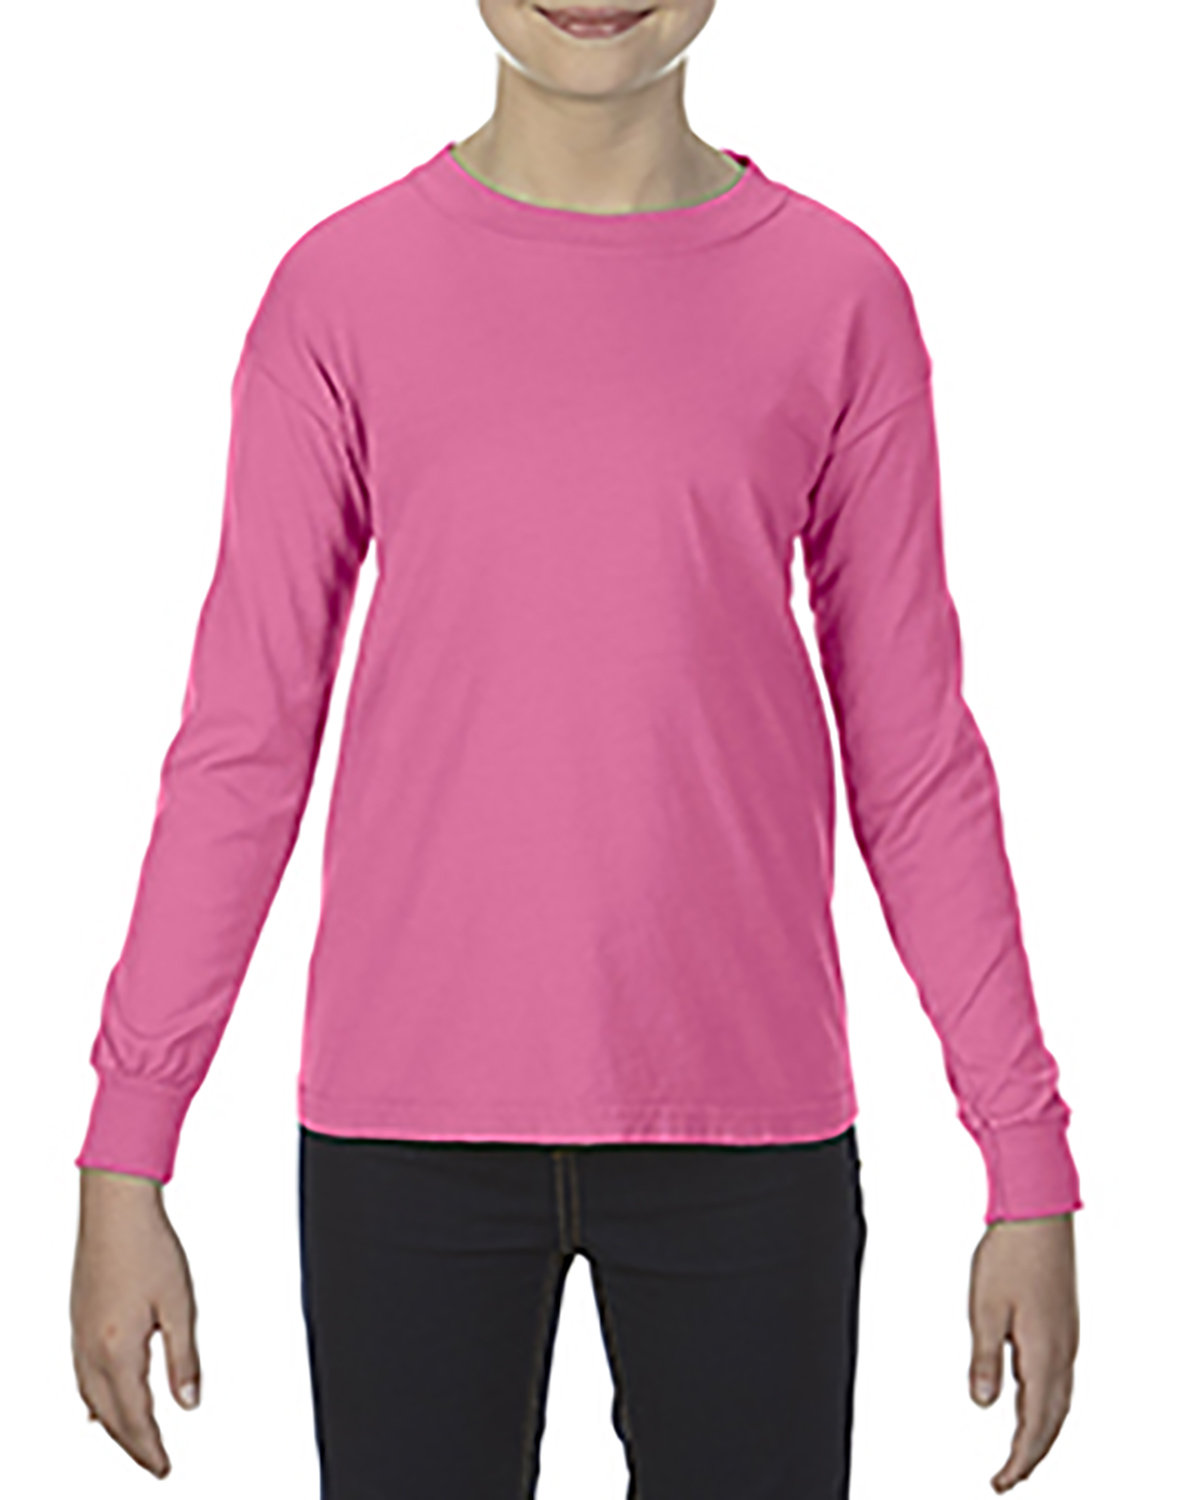 Comfort Colors Youth Garment-Dyed Long-Sleeve T-Shirt CRUNCHBERRY